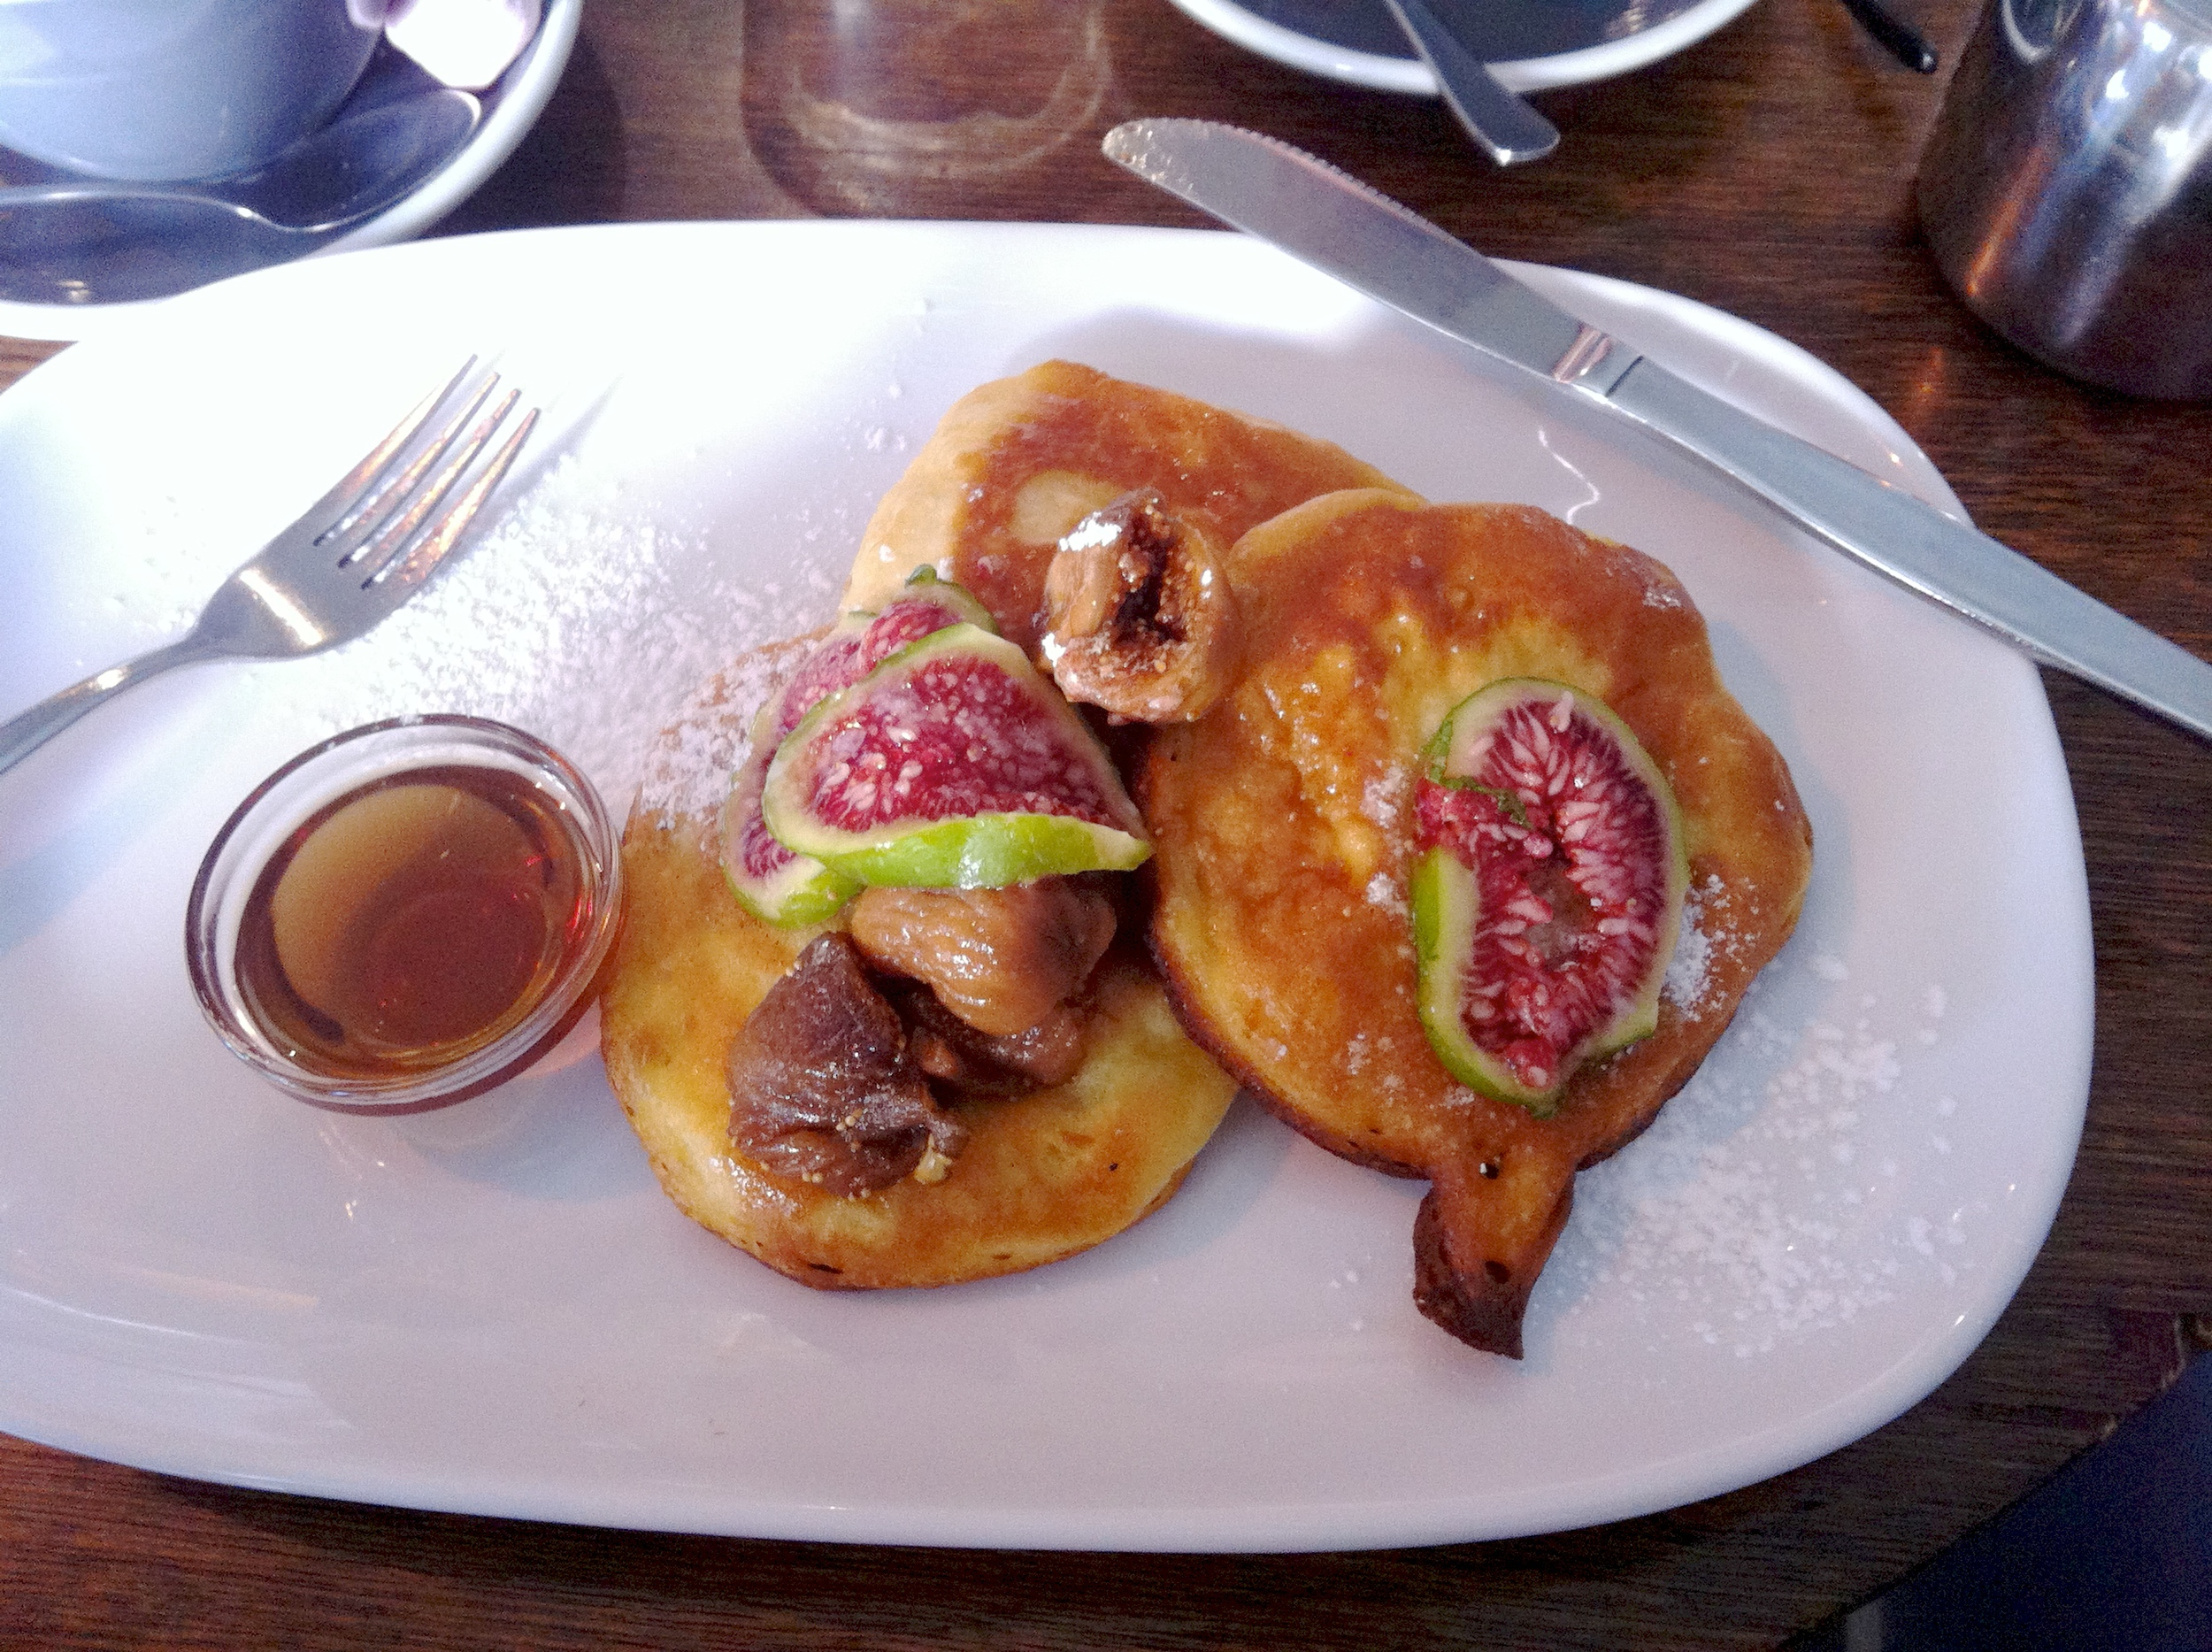 Pancakes with fresh and caramelized figs at Olive. YUM!